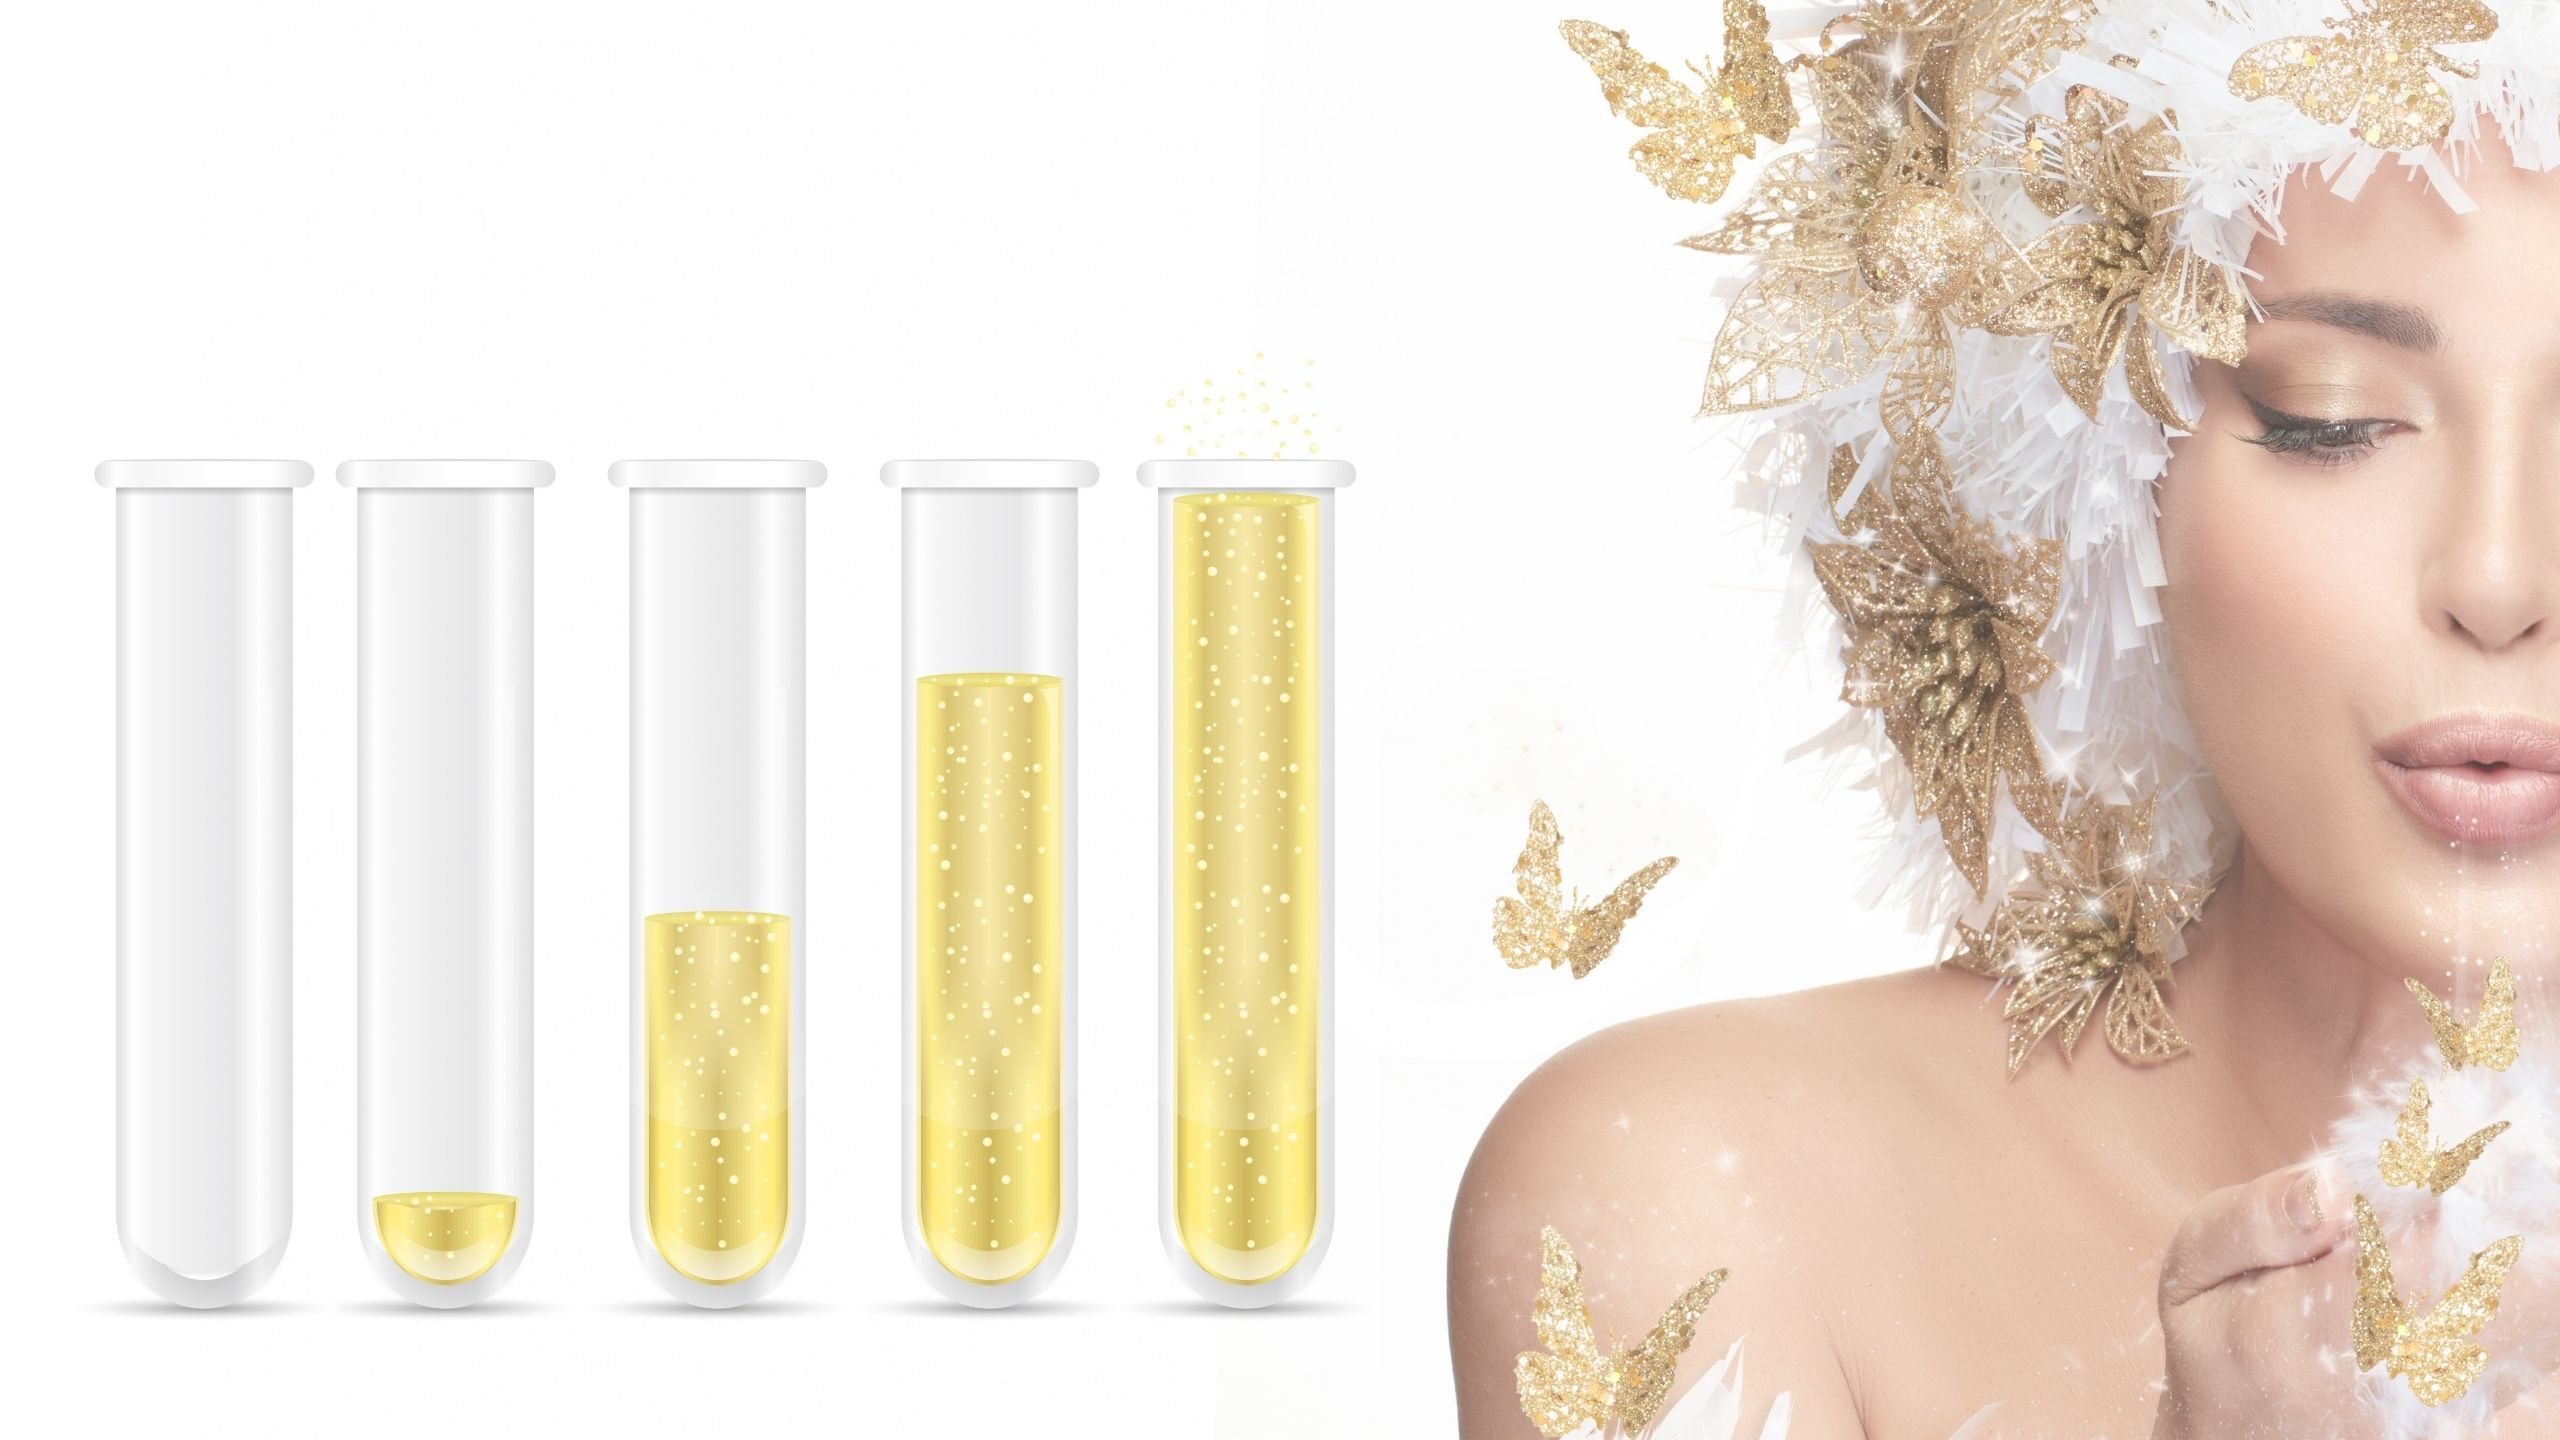 Empowering Women With Breast Cancer - Gold Lab Vials